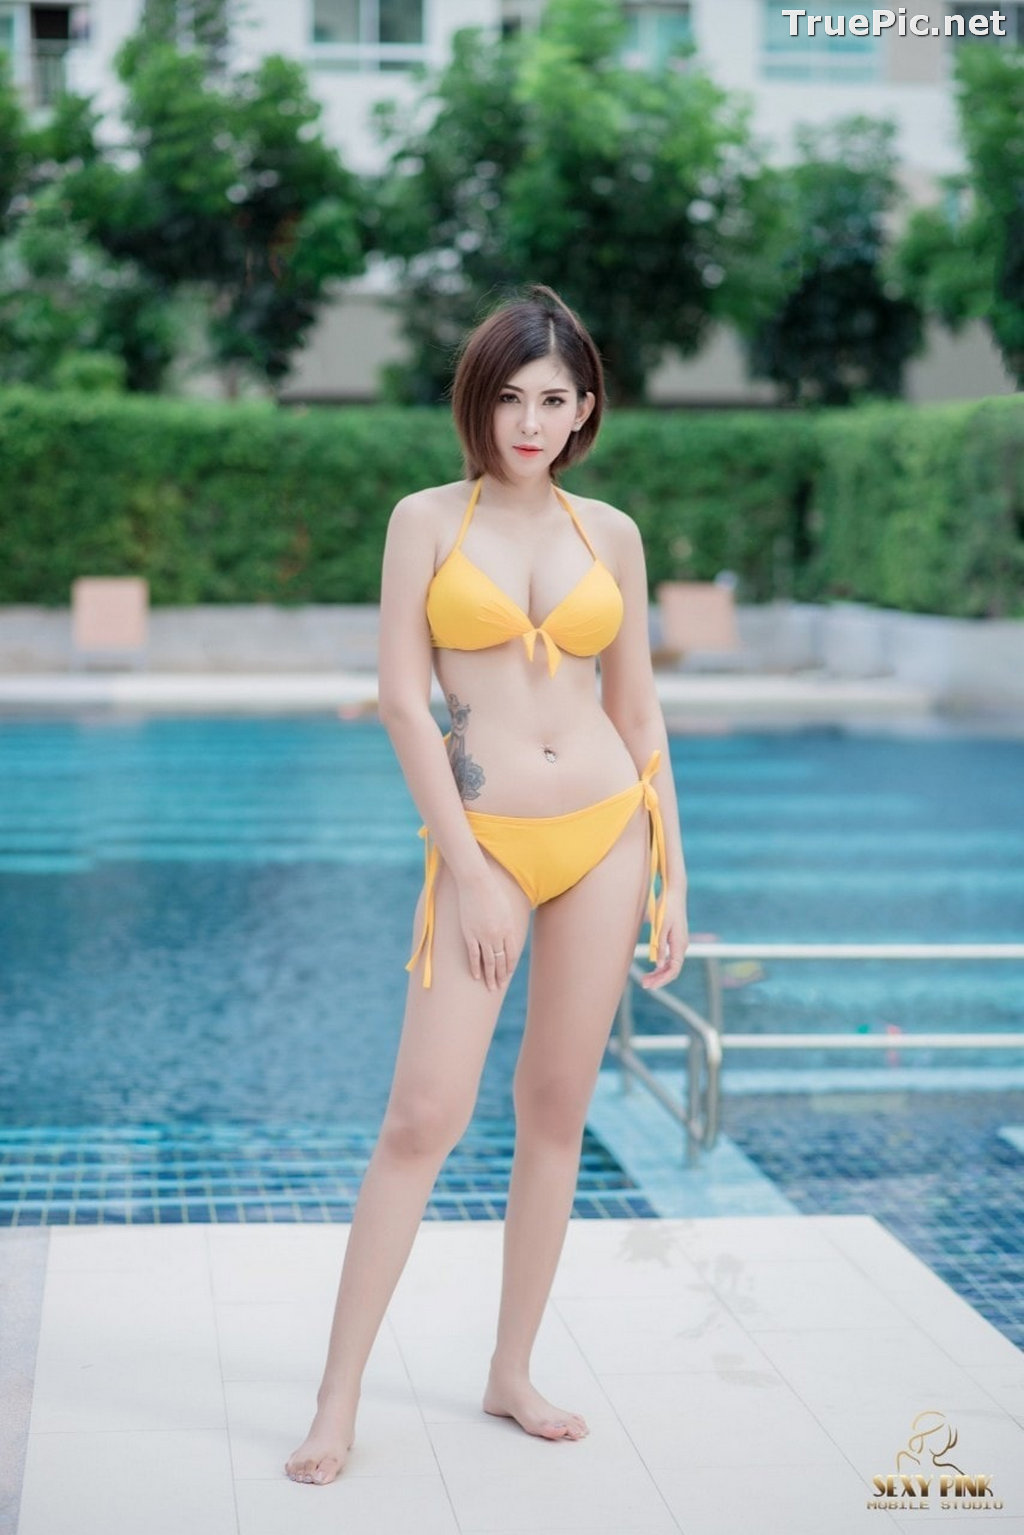 Image Thailand Model - Pharada Baokhum - Yellow Bikini In The Swimming Pool - TruePic.net - Picture-2